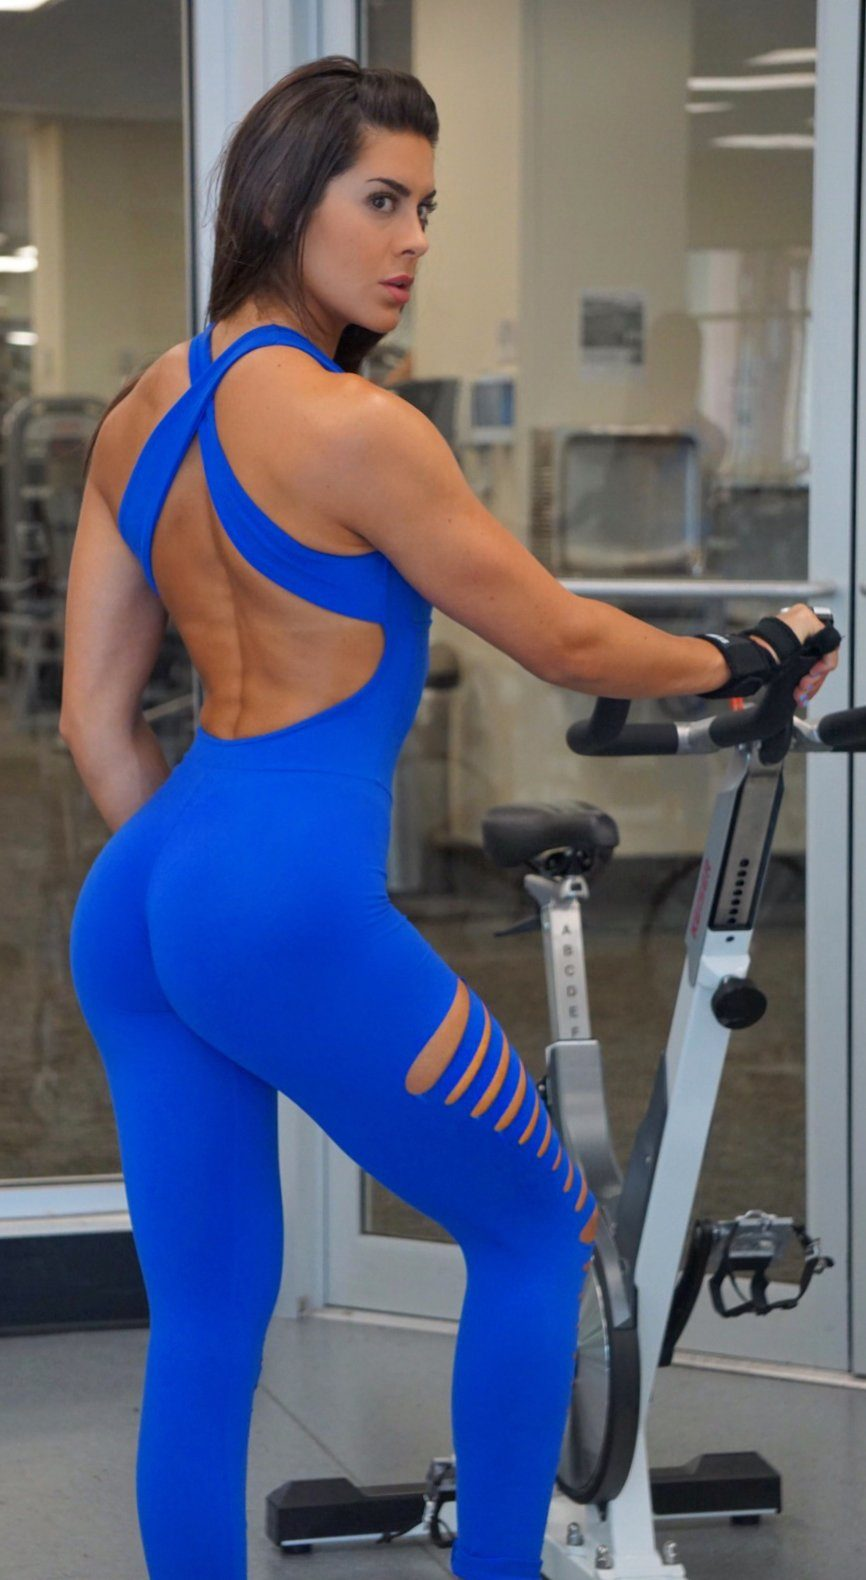 58c7e19f564c Brazilian Workout Jumpsuit - Ripped Heroine Royal Blue